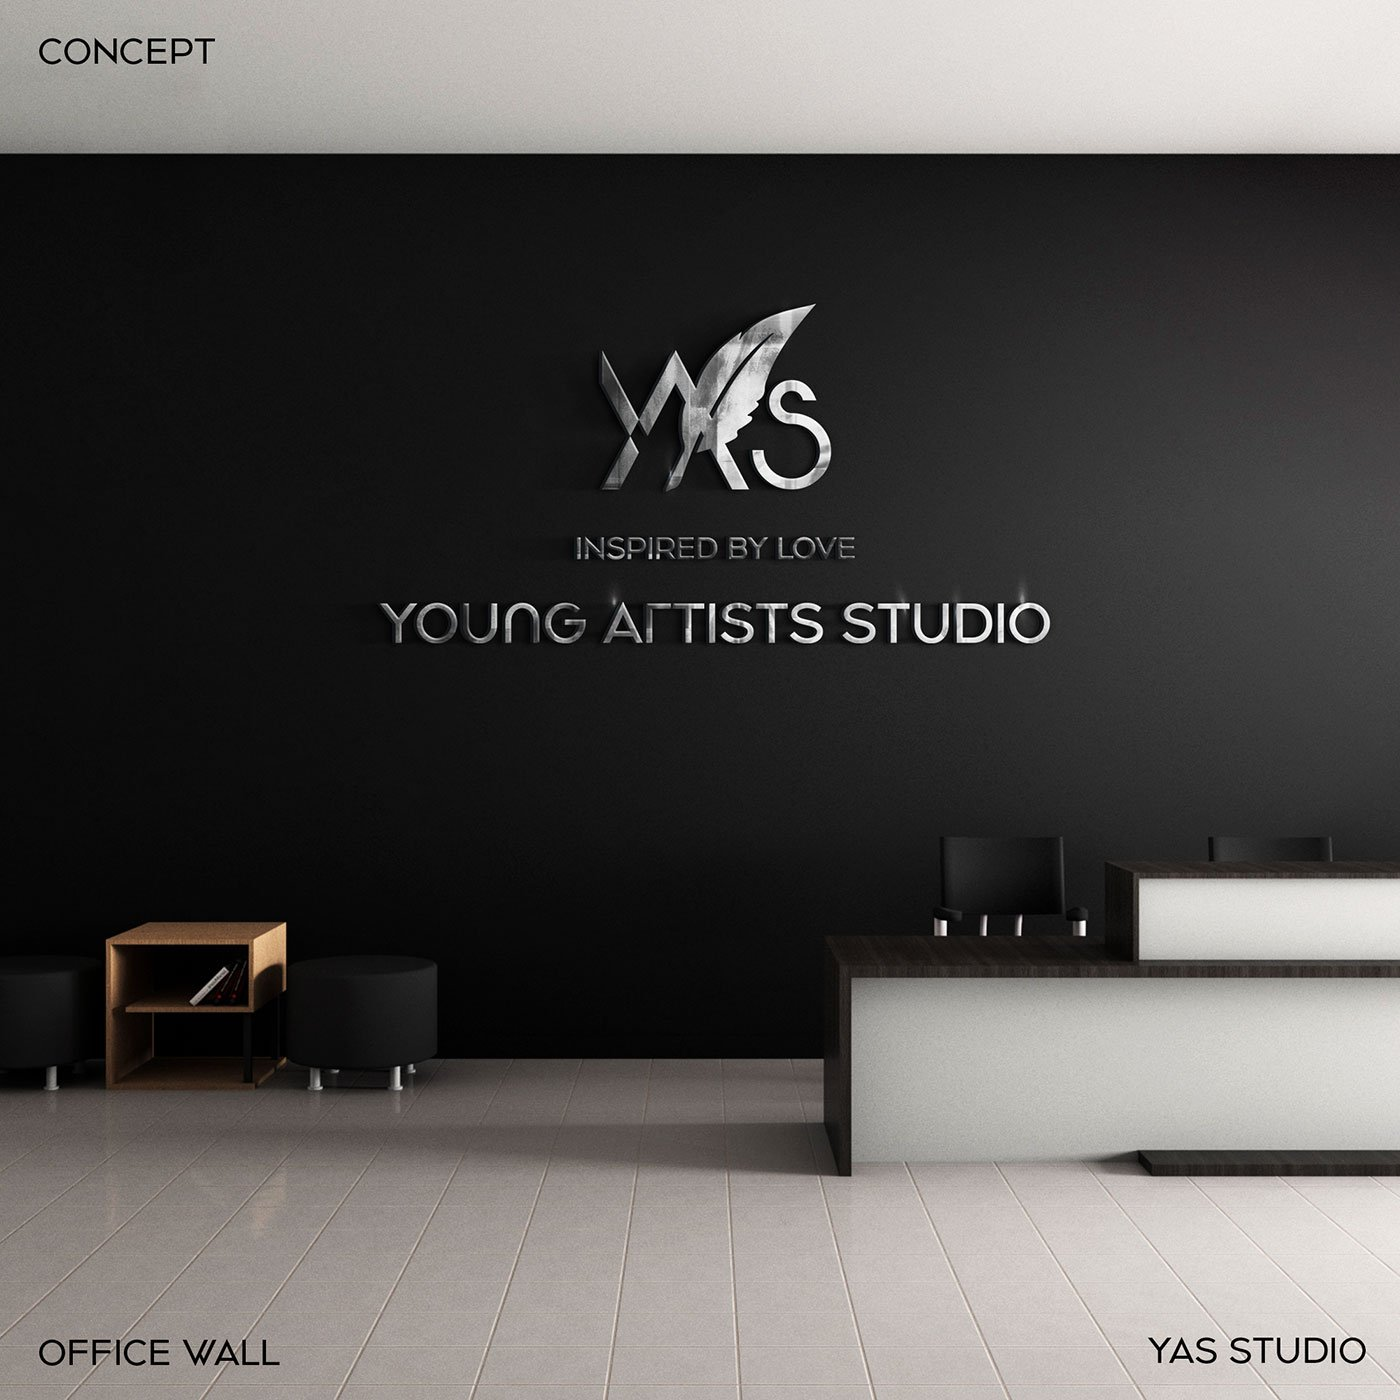 YAS Young Artists Studio brand-logo-showcase-mockup-billboard-branding-visual-identity-design Vietnam-graphic-design-and-branding-web-design-professional-logo-design-company-logo-design-Helixgram